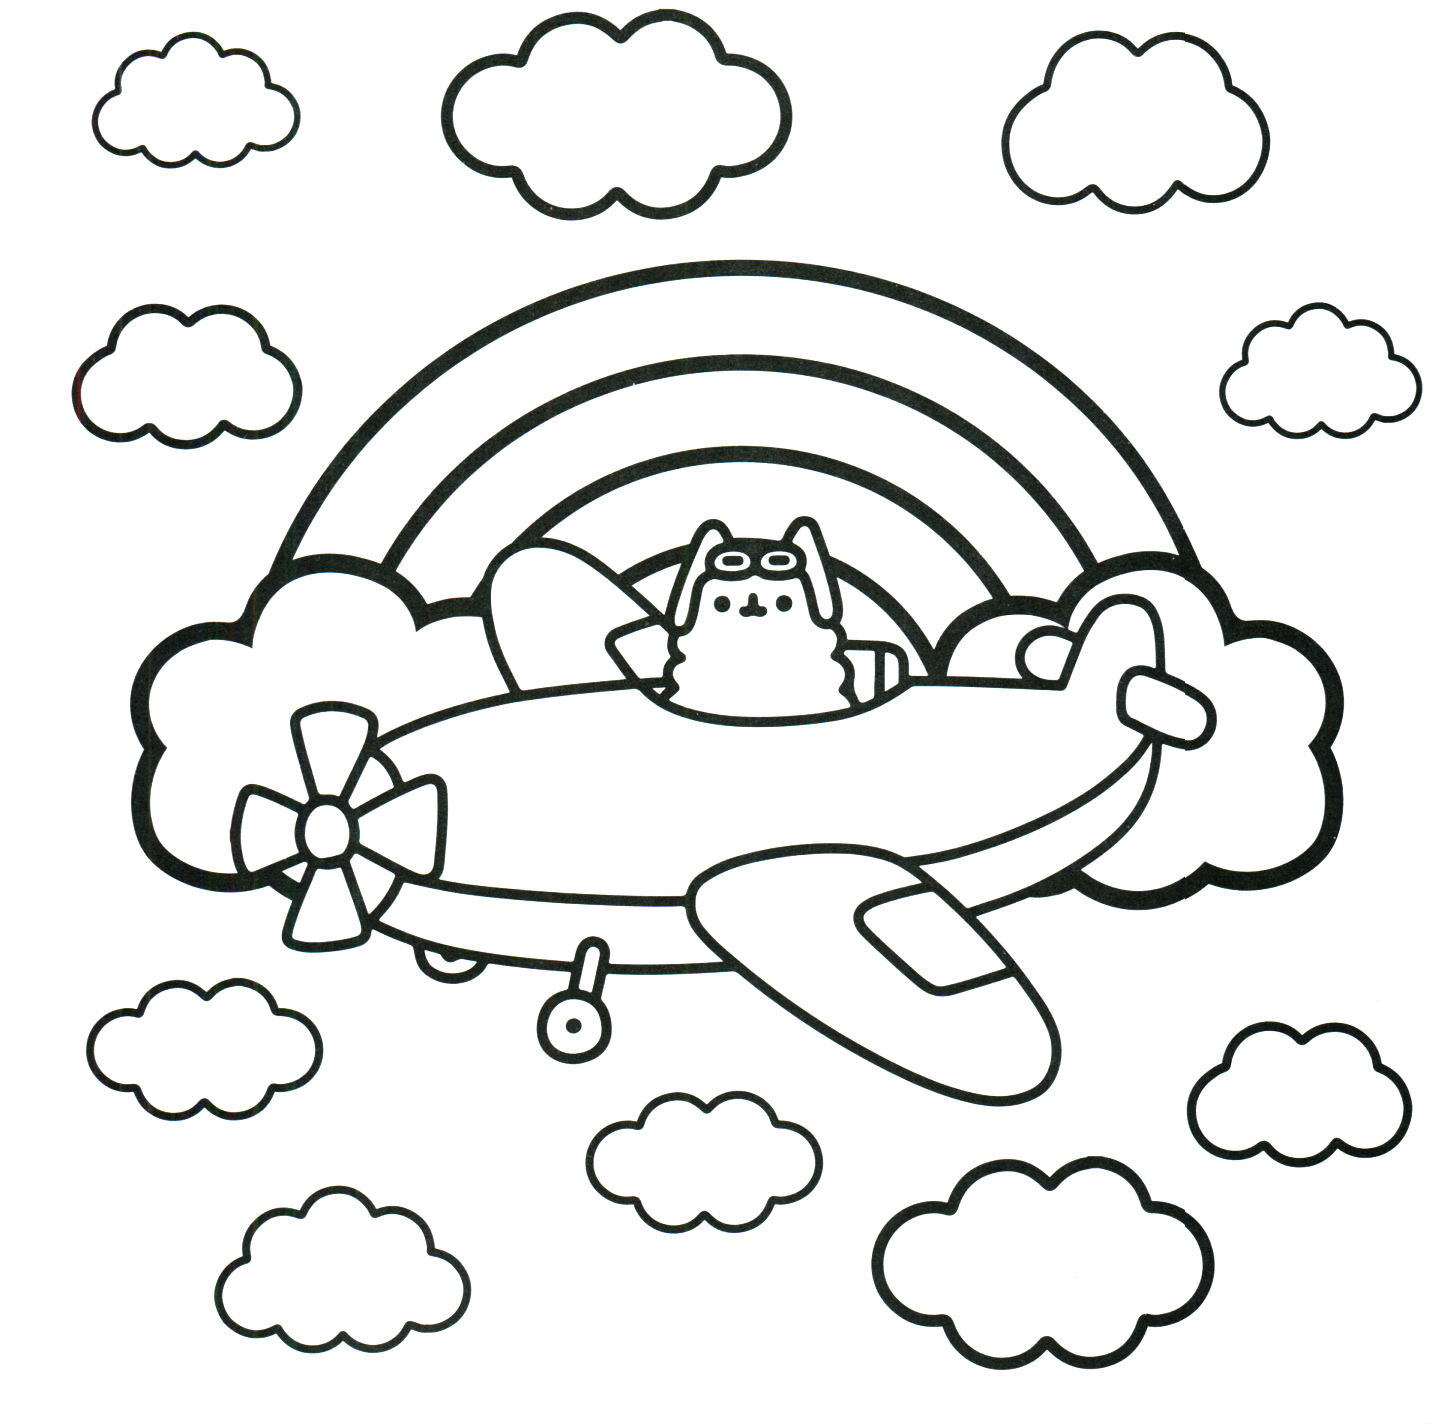 Pusheen Coloring Pages Best Coloring Pages For Kids Airplane Coloring Pages Pusheen Coloring Pages Cat Coloring Page